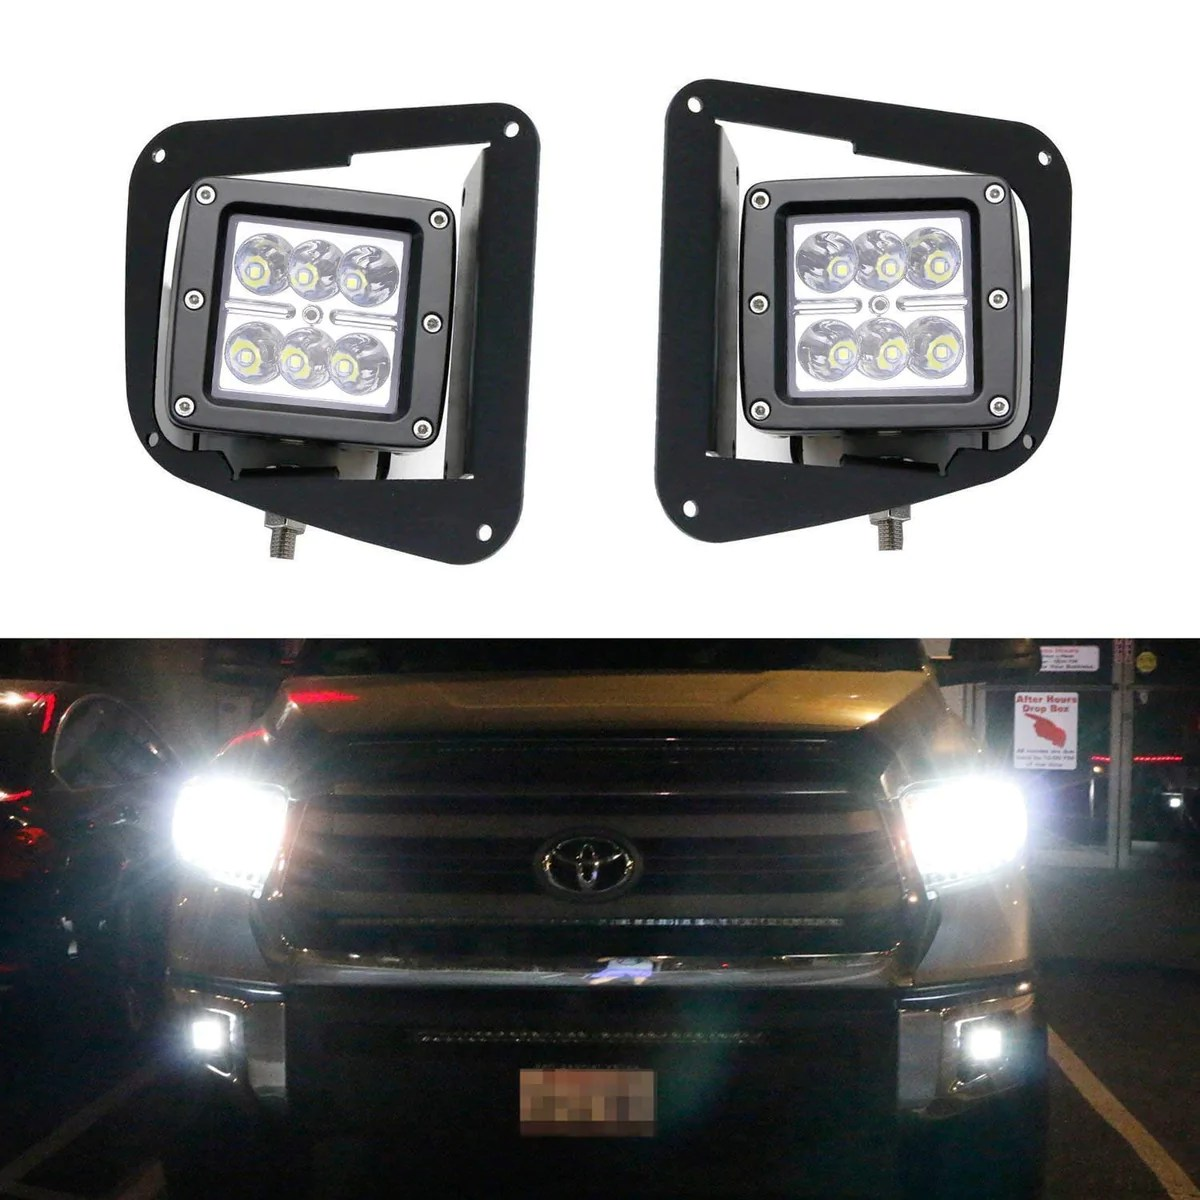 led pod light fog lamp kit for 2014 up toyota tundra includes 2 24w high power 2x3 cree led cubes foglight location mount brackets wiring adapter  [ 1200 x 1200 Pixel ]